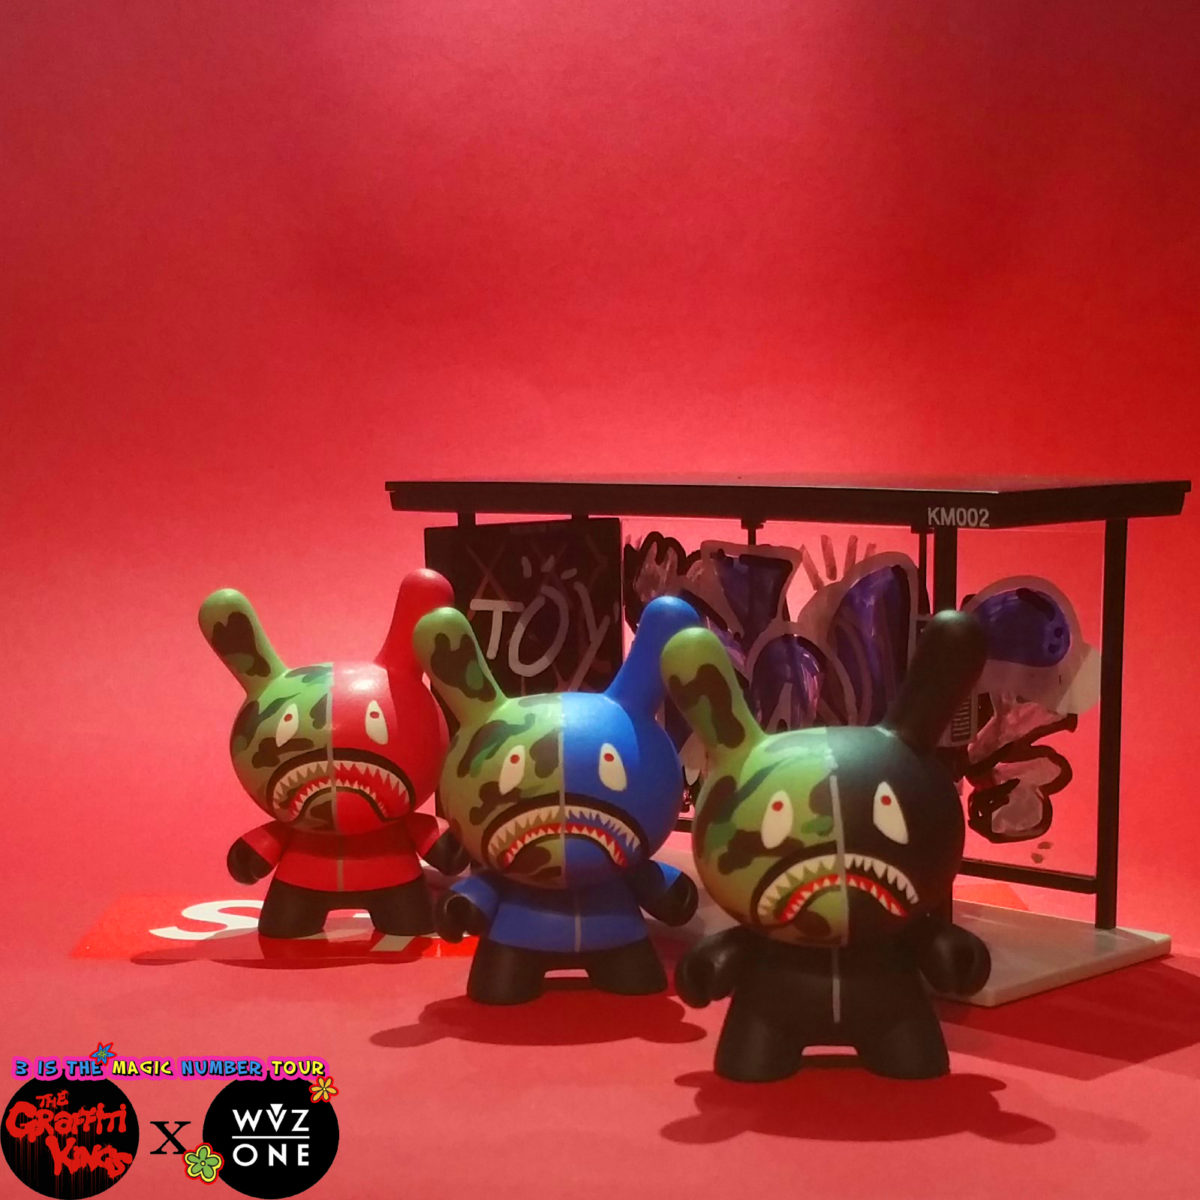 Graffiti Kings Hypebeast Dunny Ape WuzOne Bathing Ape (4)